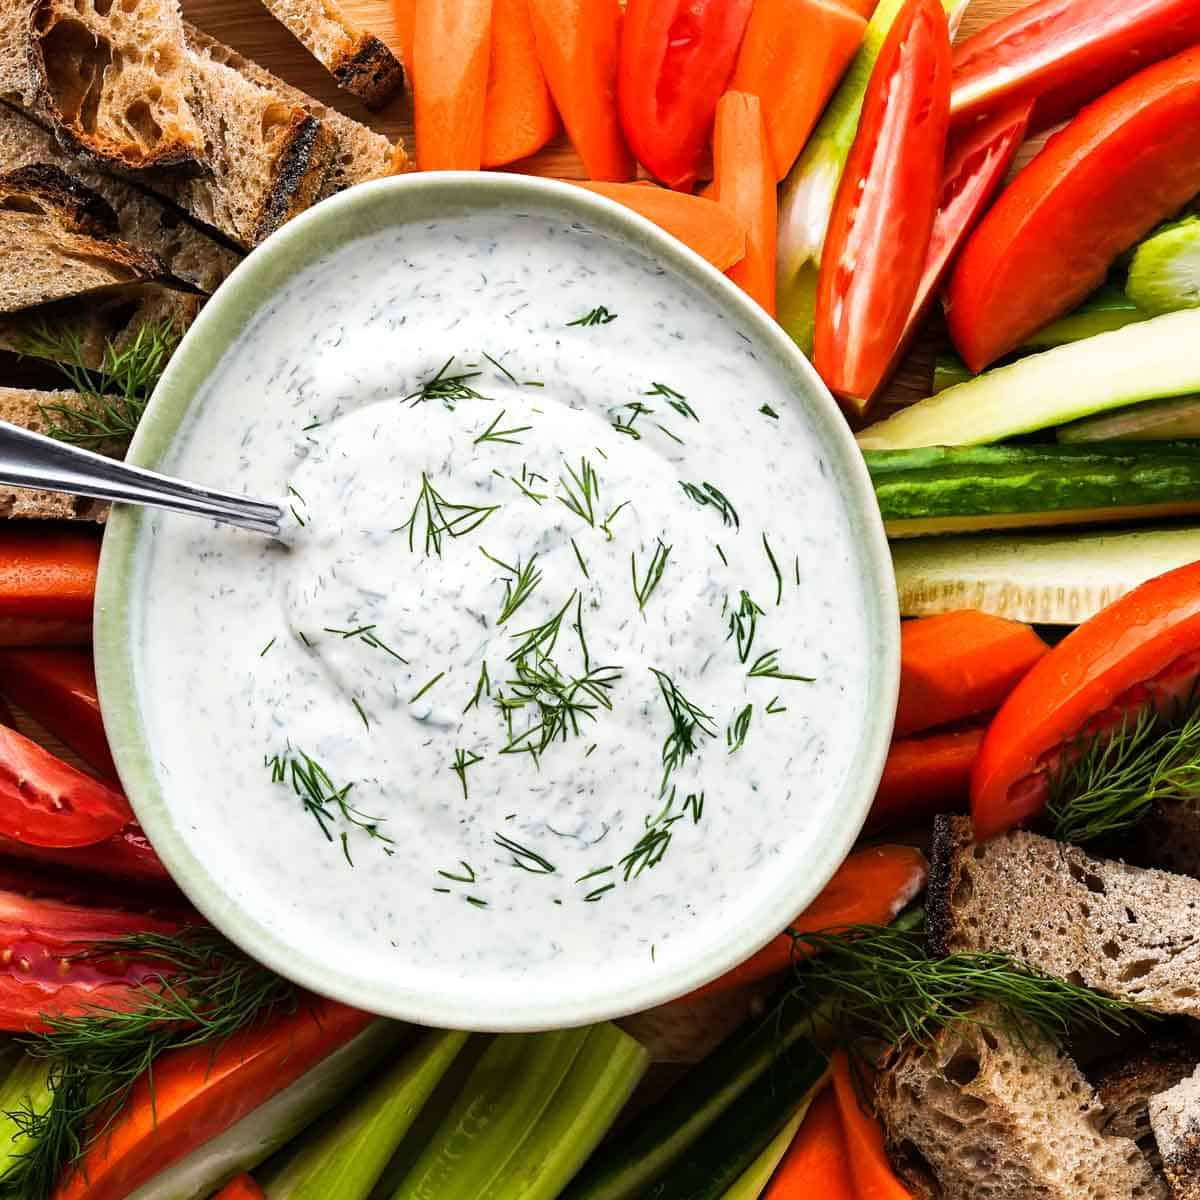 yogurt sauce in green bowl with veggies on the side